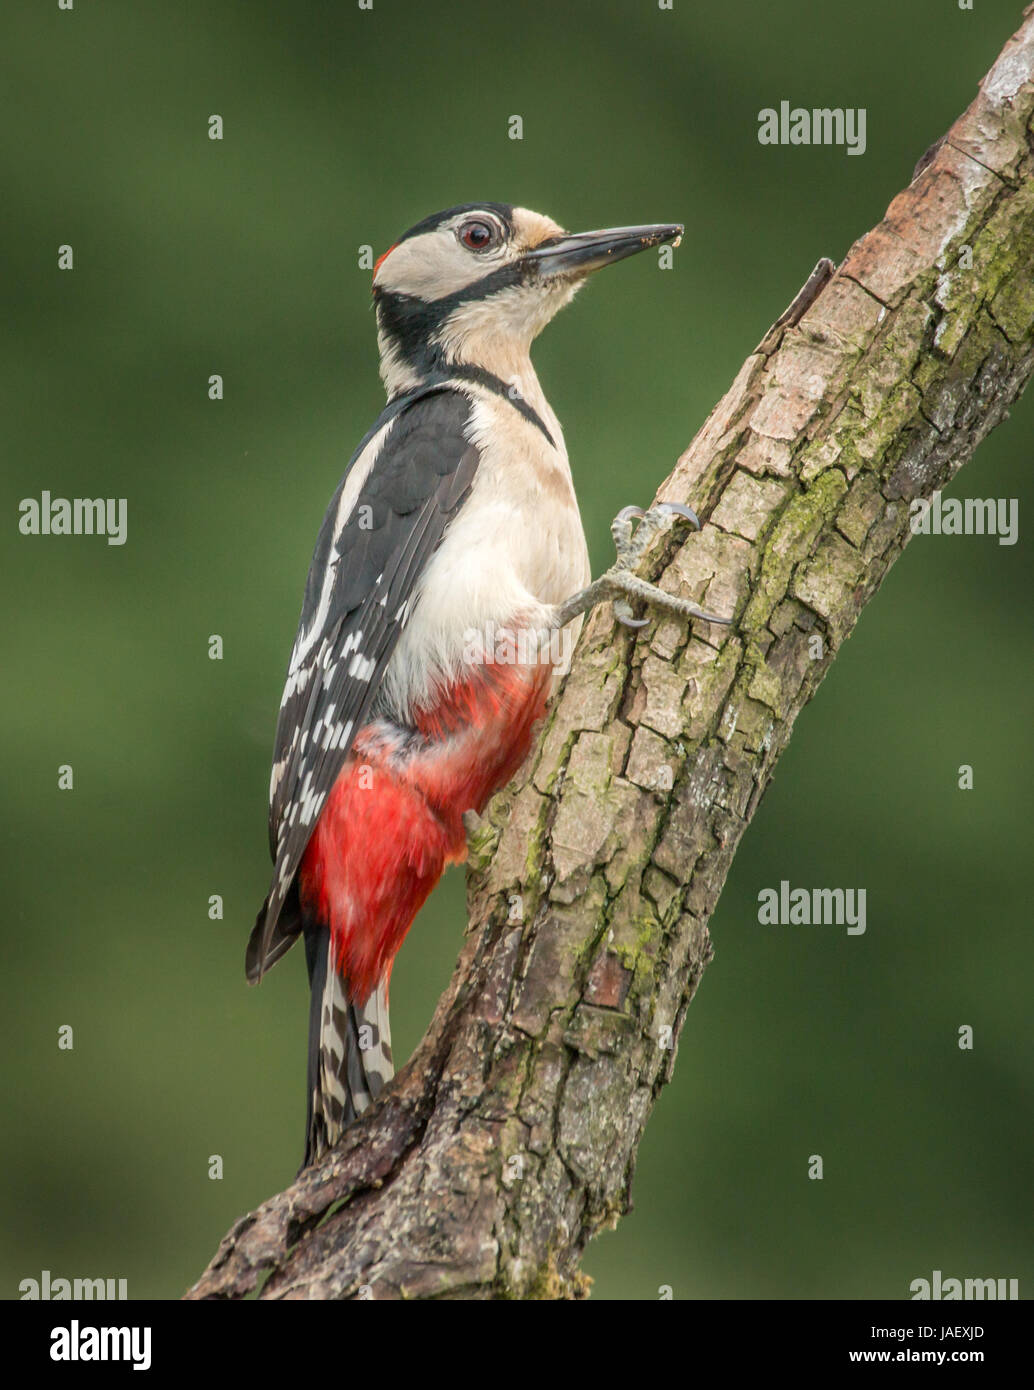 Great spotted woodpecker male clinging to tree branch, with foliage as background - Stock Image